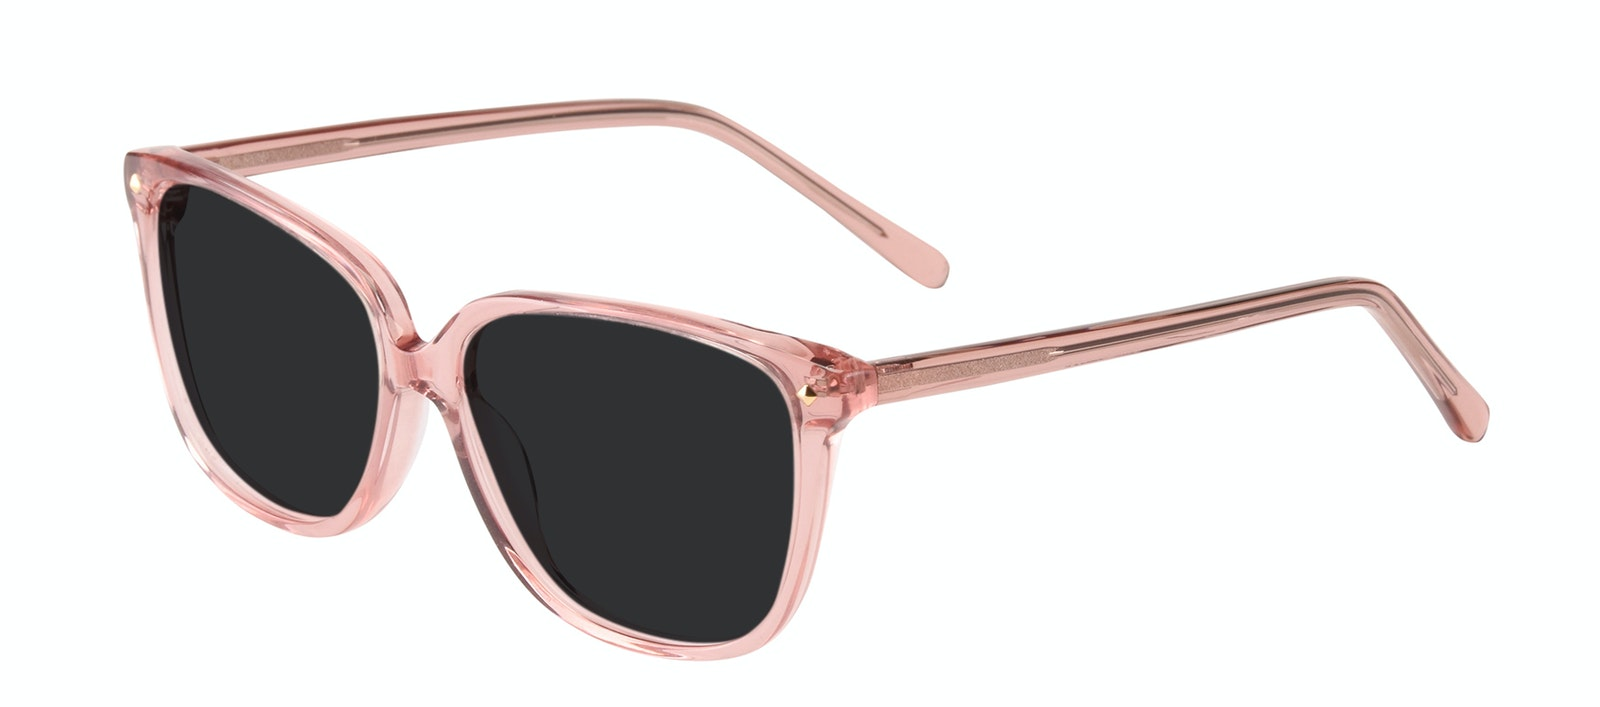 Affordable Fashion Glasses Rectangle Square Sunglasses Women Muse Rose Tilt